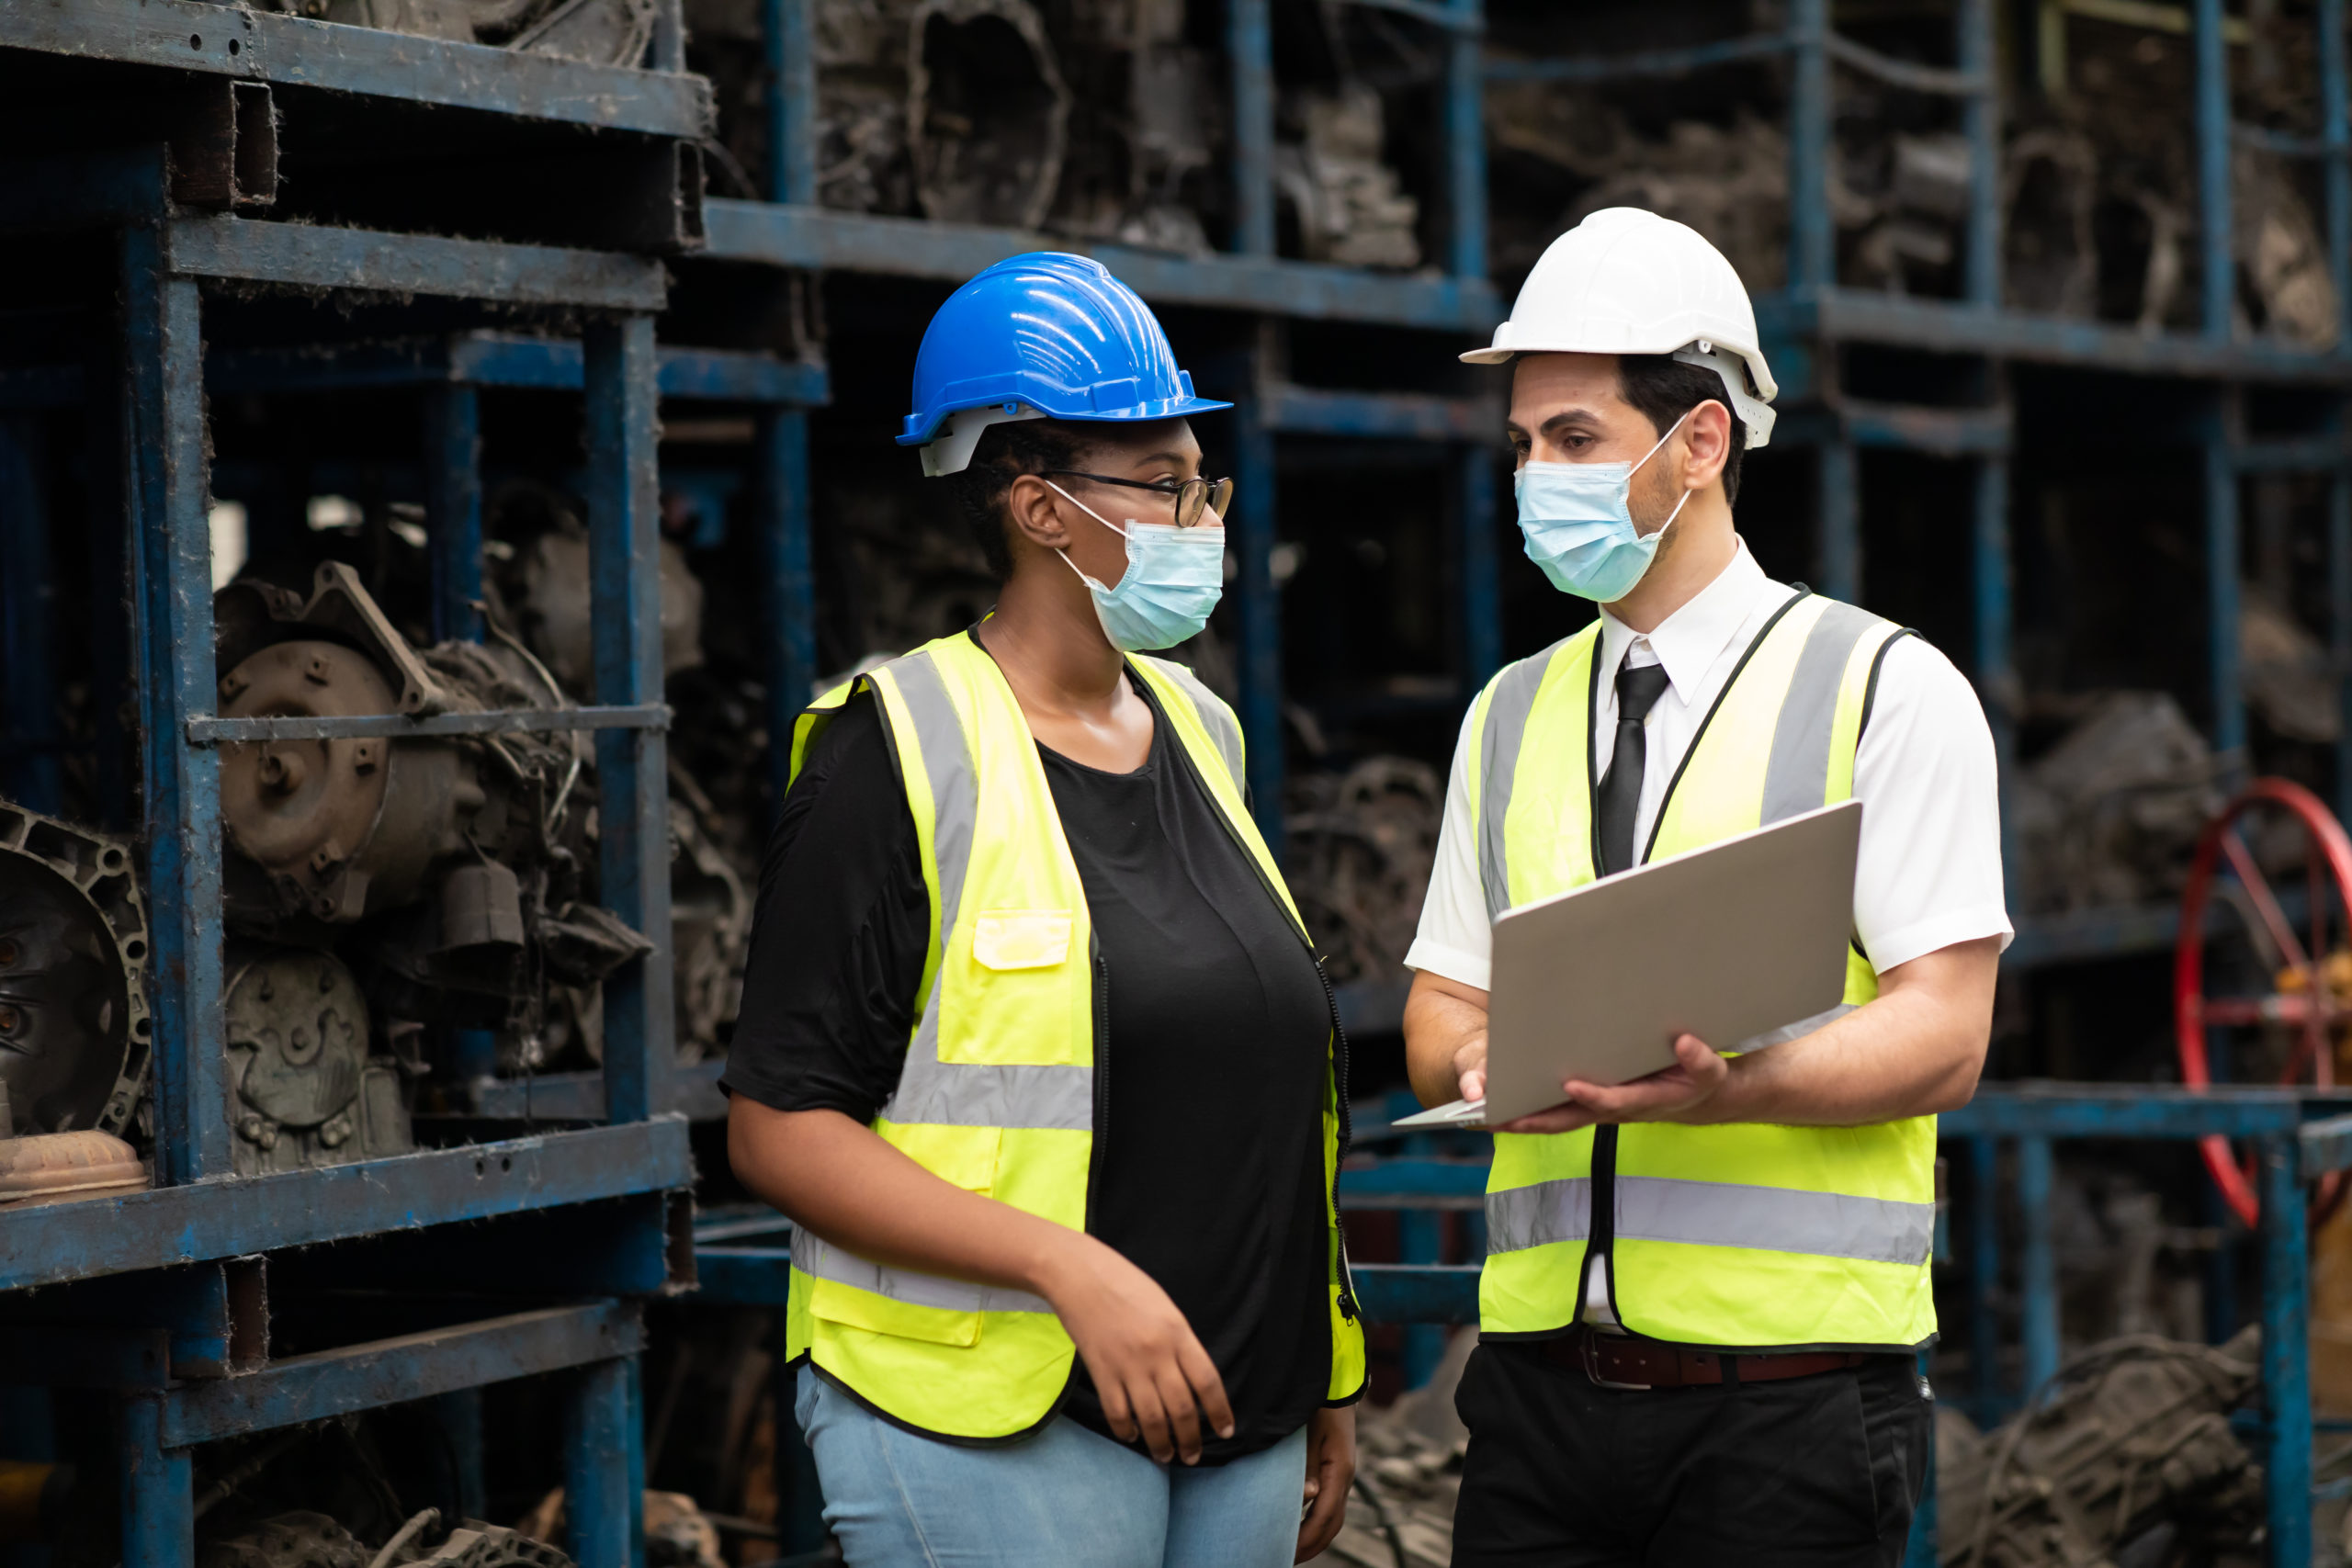 workers wear masks due to Covid-19